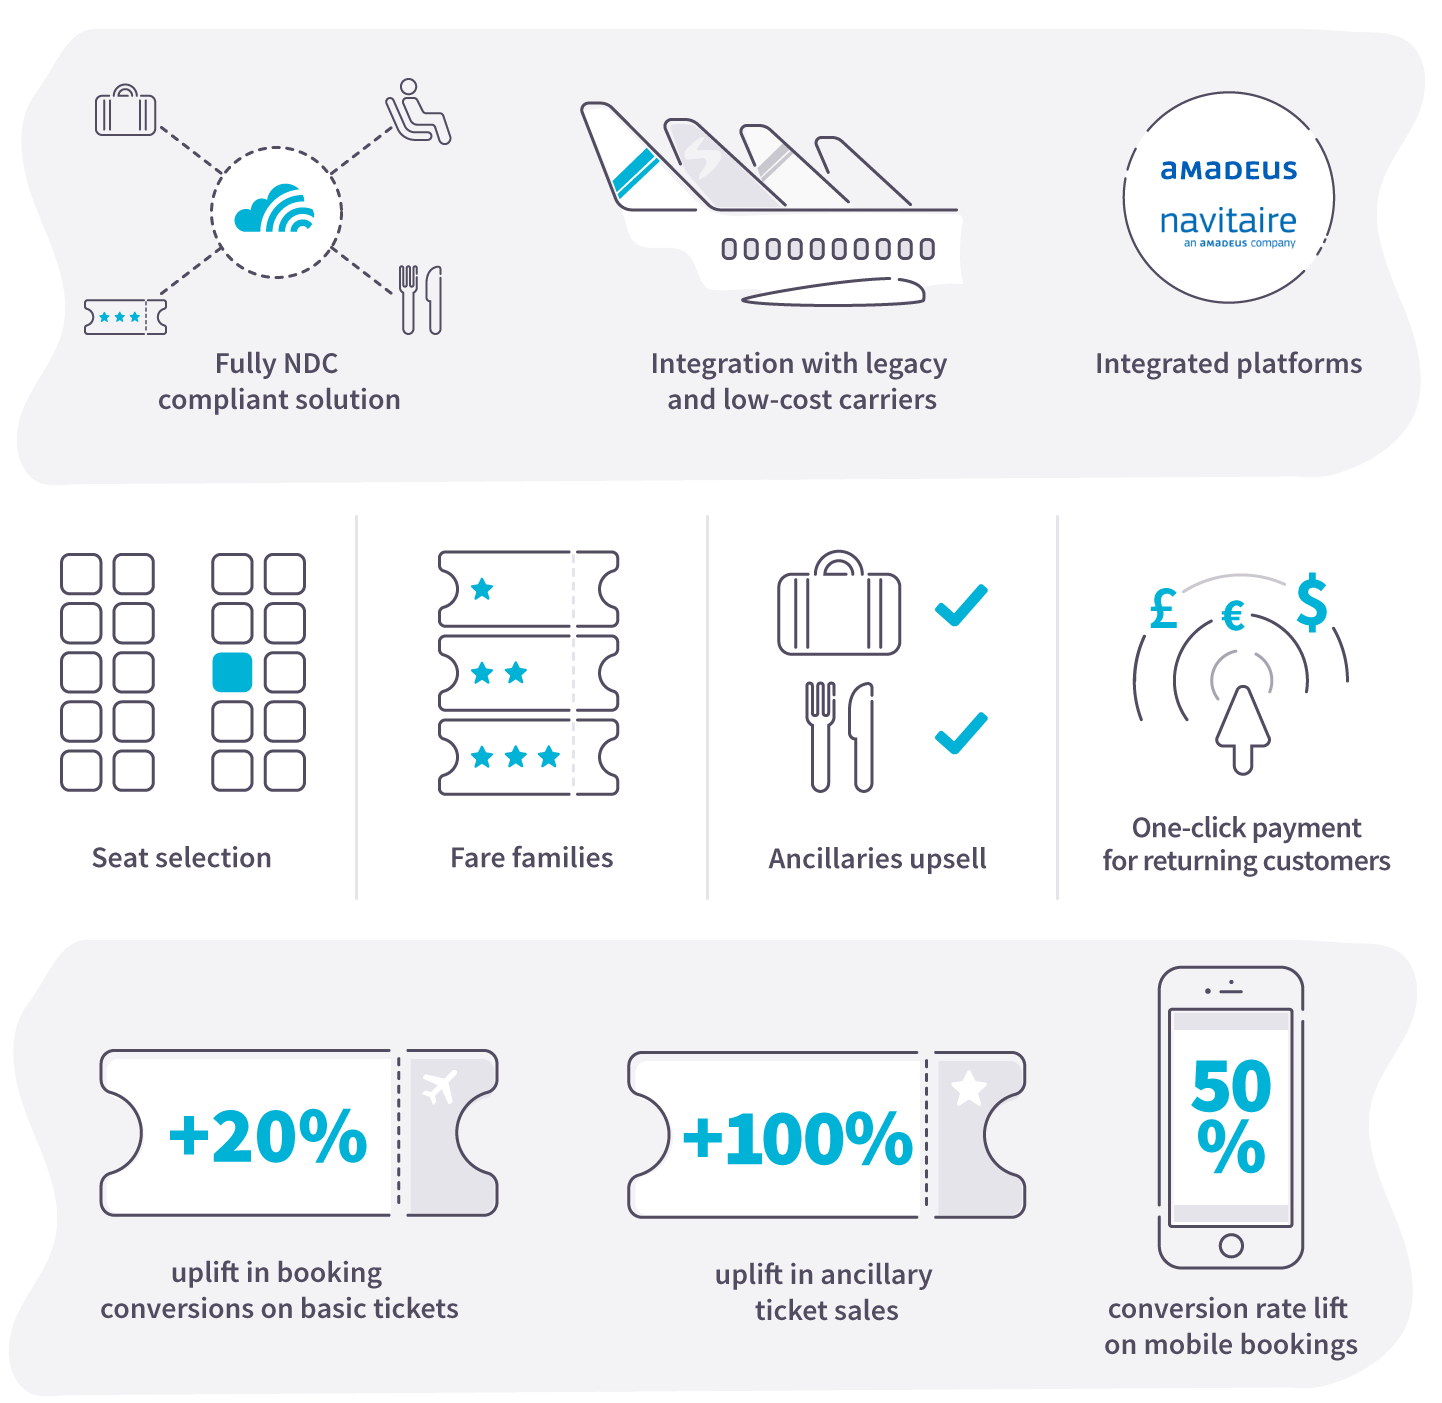 Future of Distribution — Skyscanner